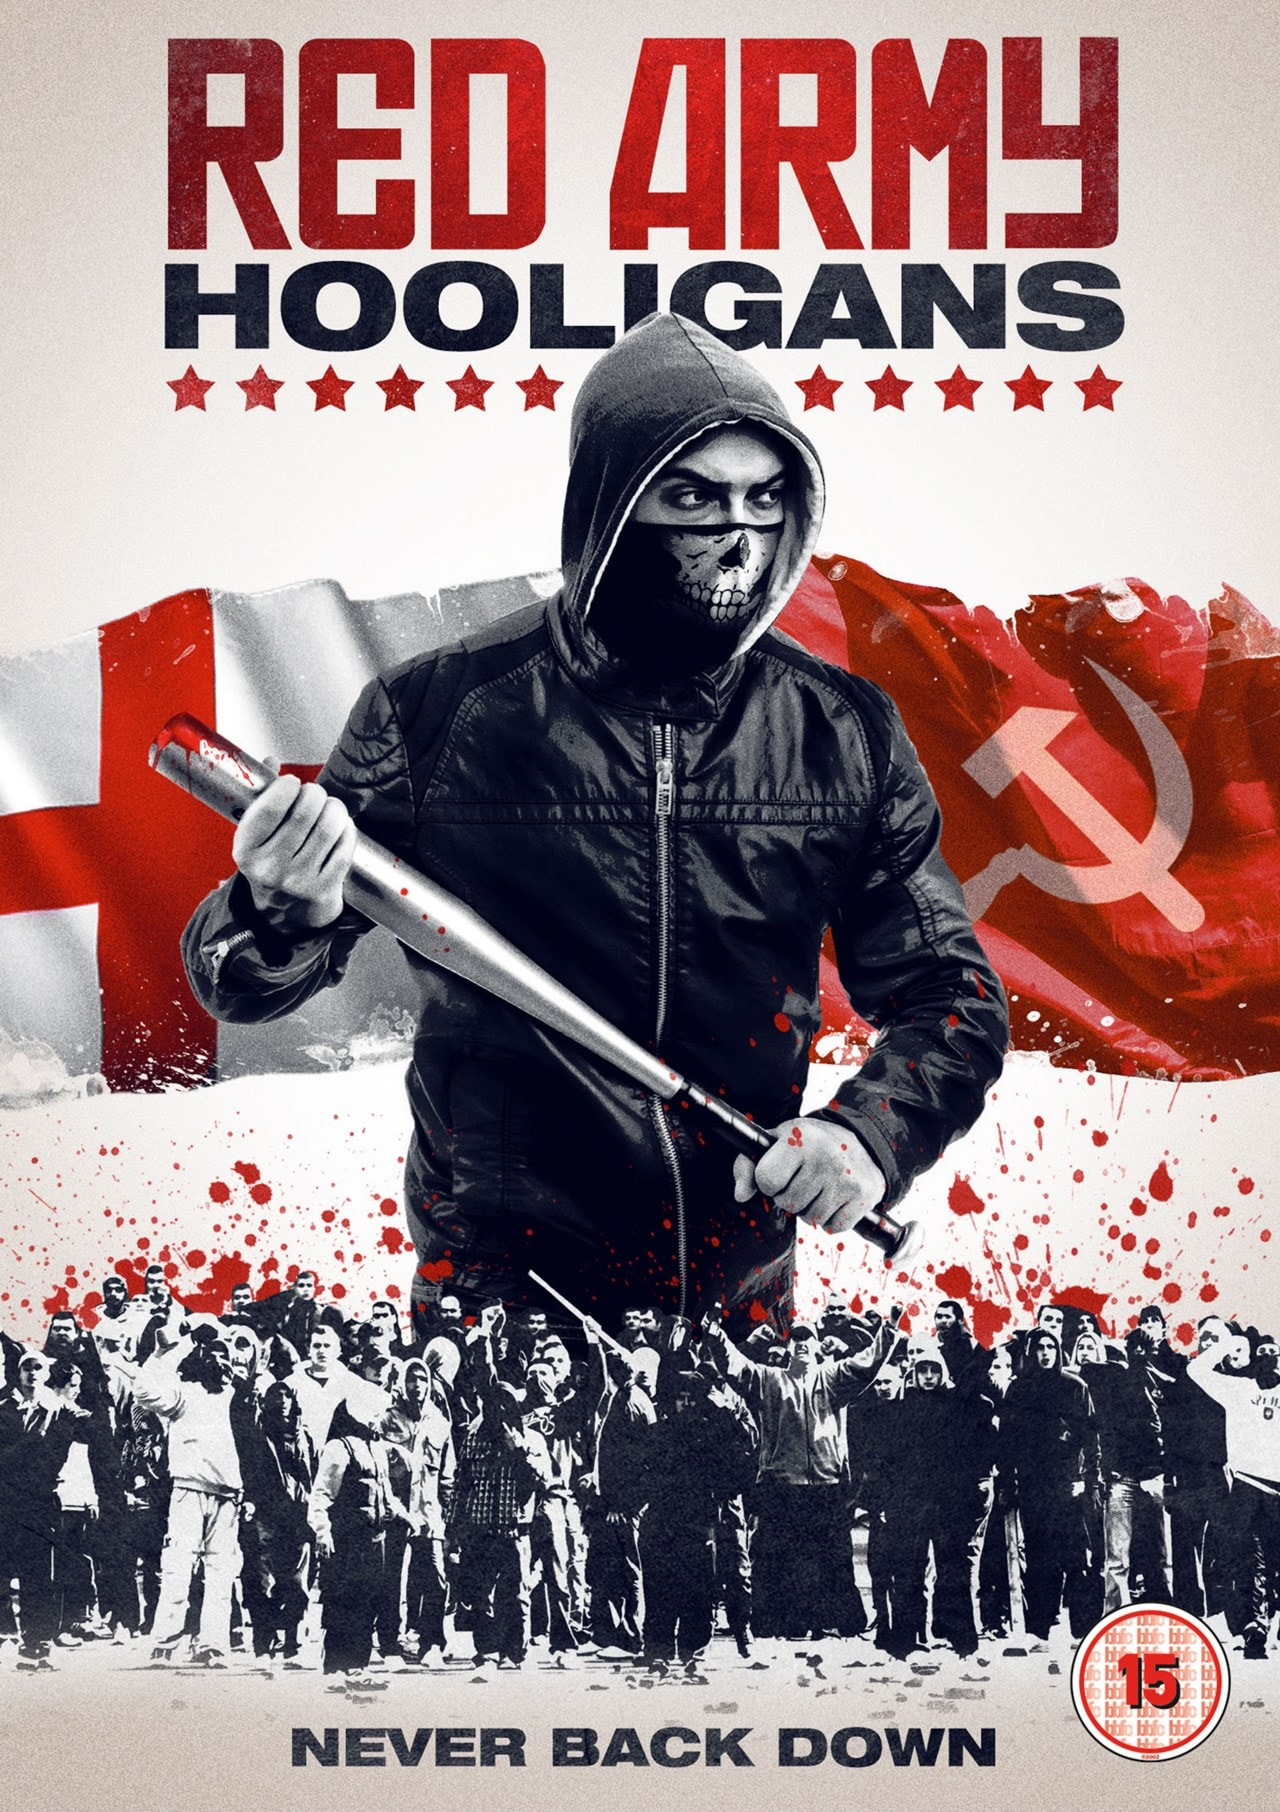 Red Army Hooligans - 1